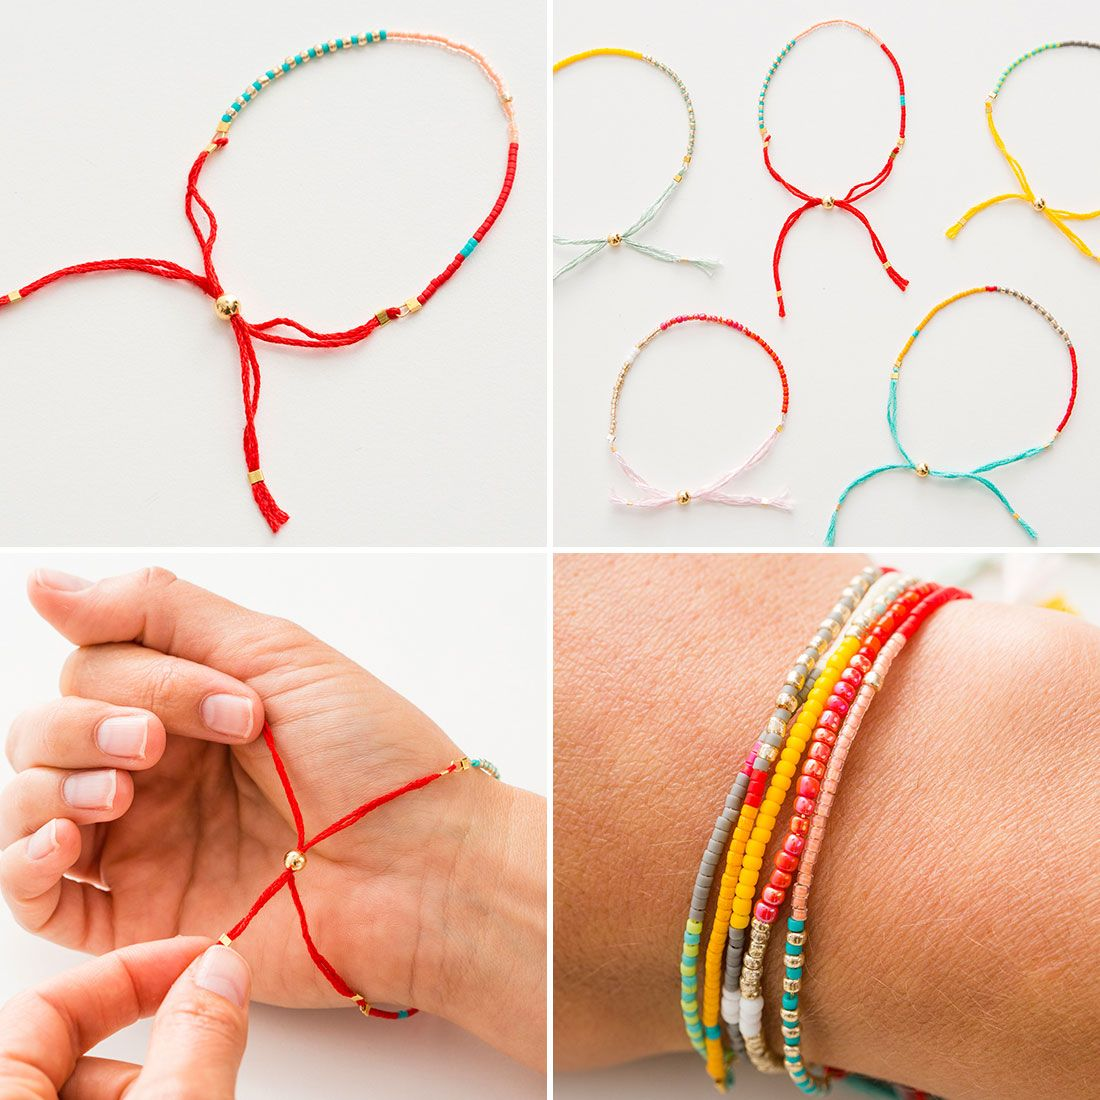 Use Seed Beads To Make These Colorful Friendship Bracelets